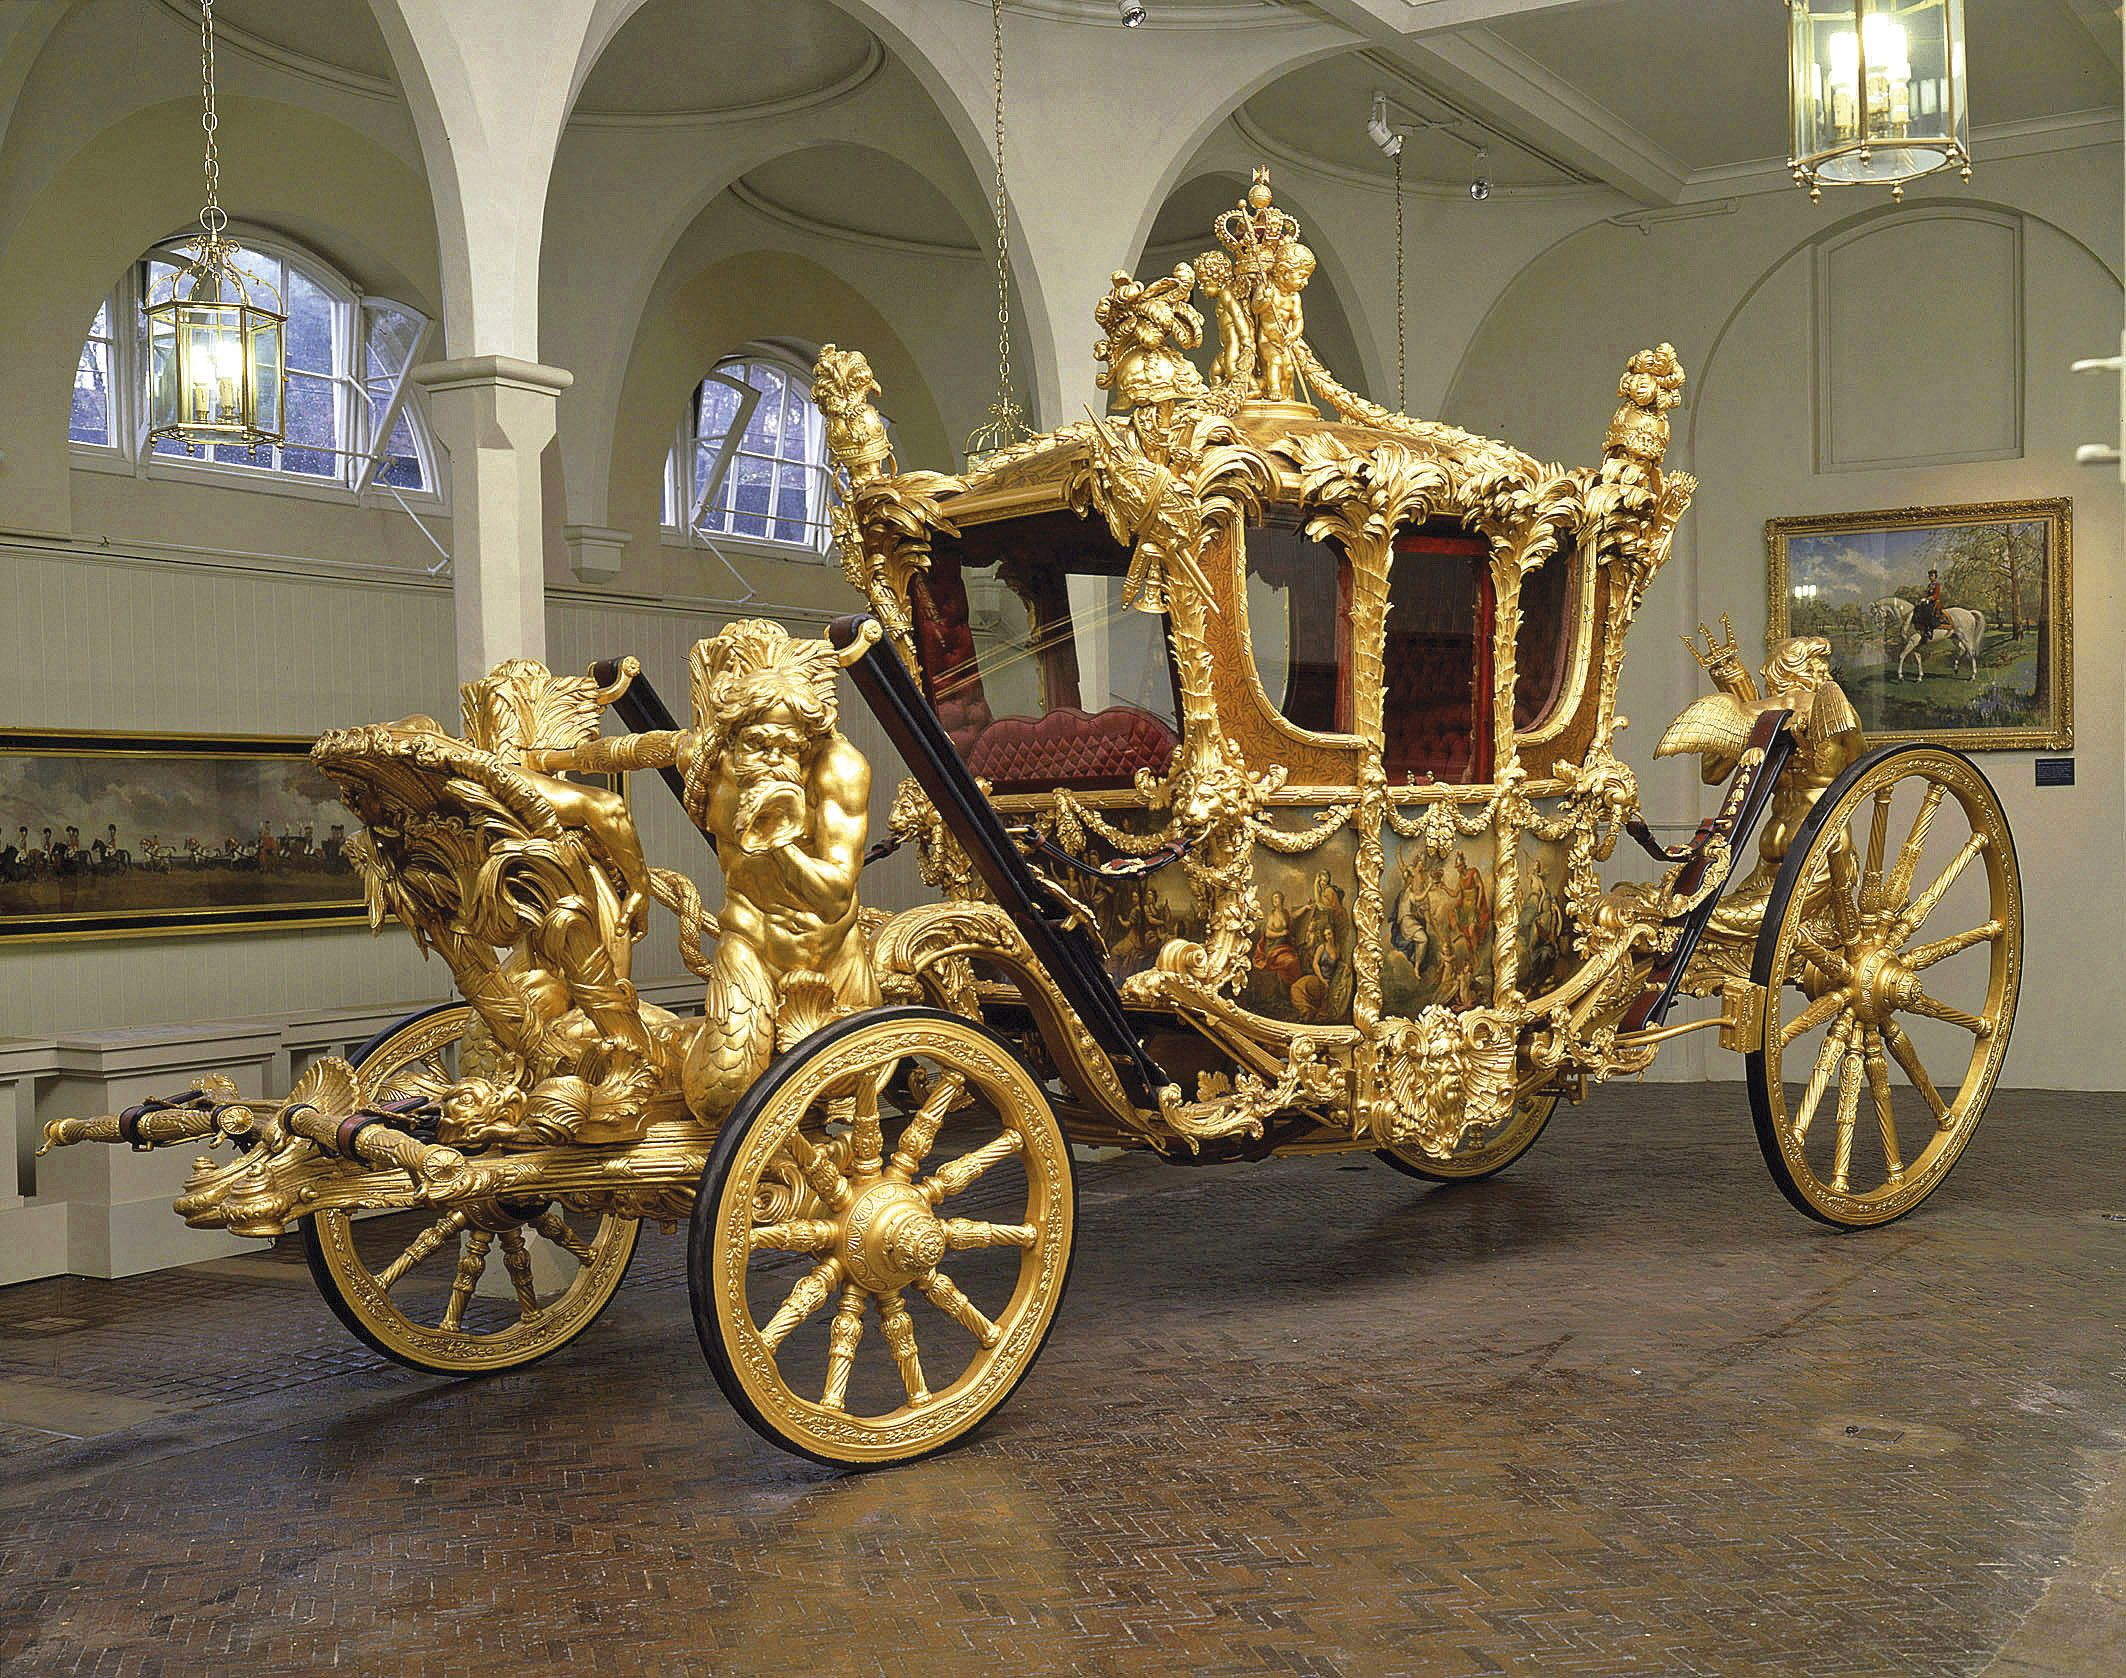 47 Royalty - Carriages ideas | carriages, royal, buckingham palace